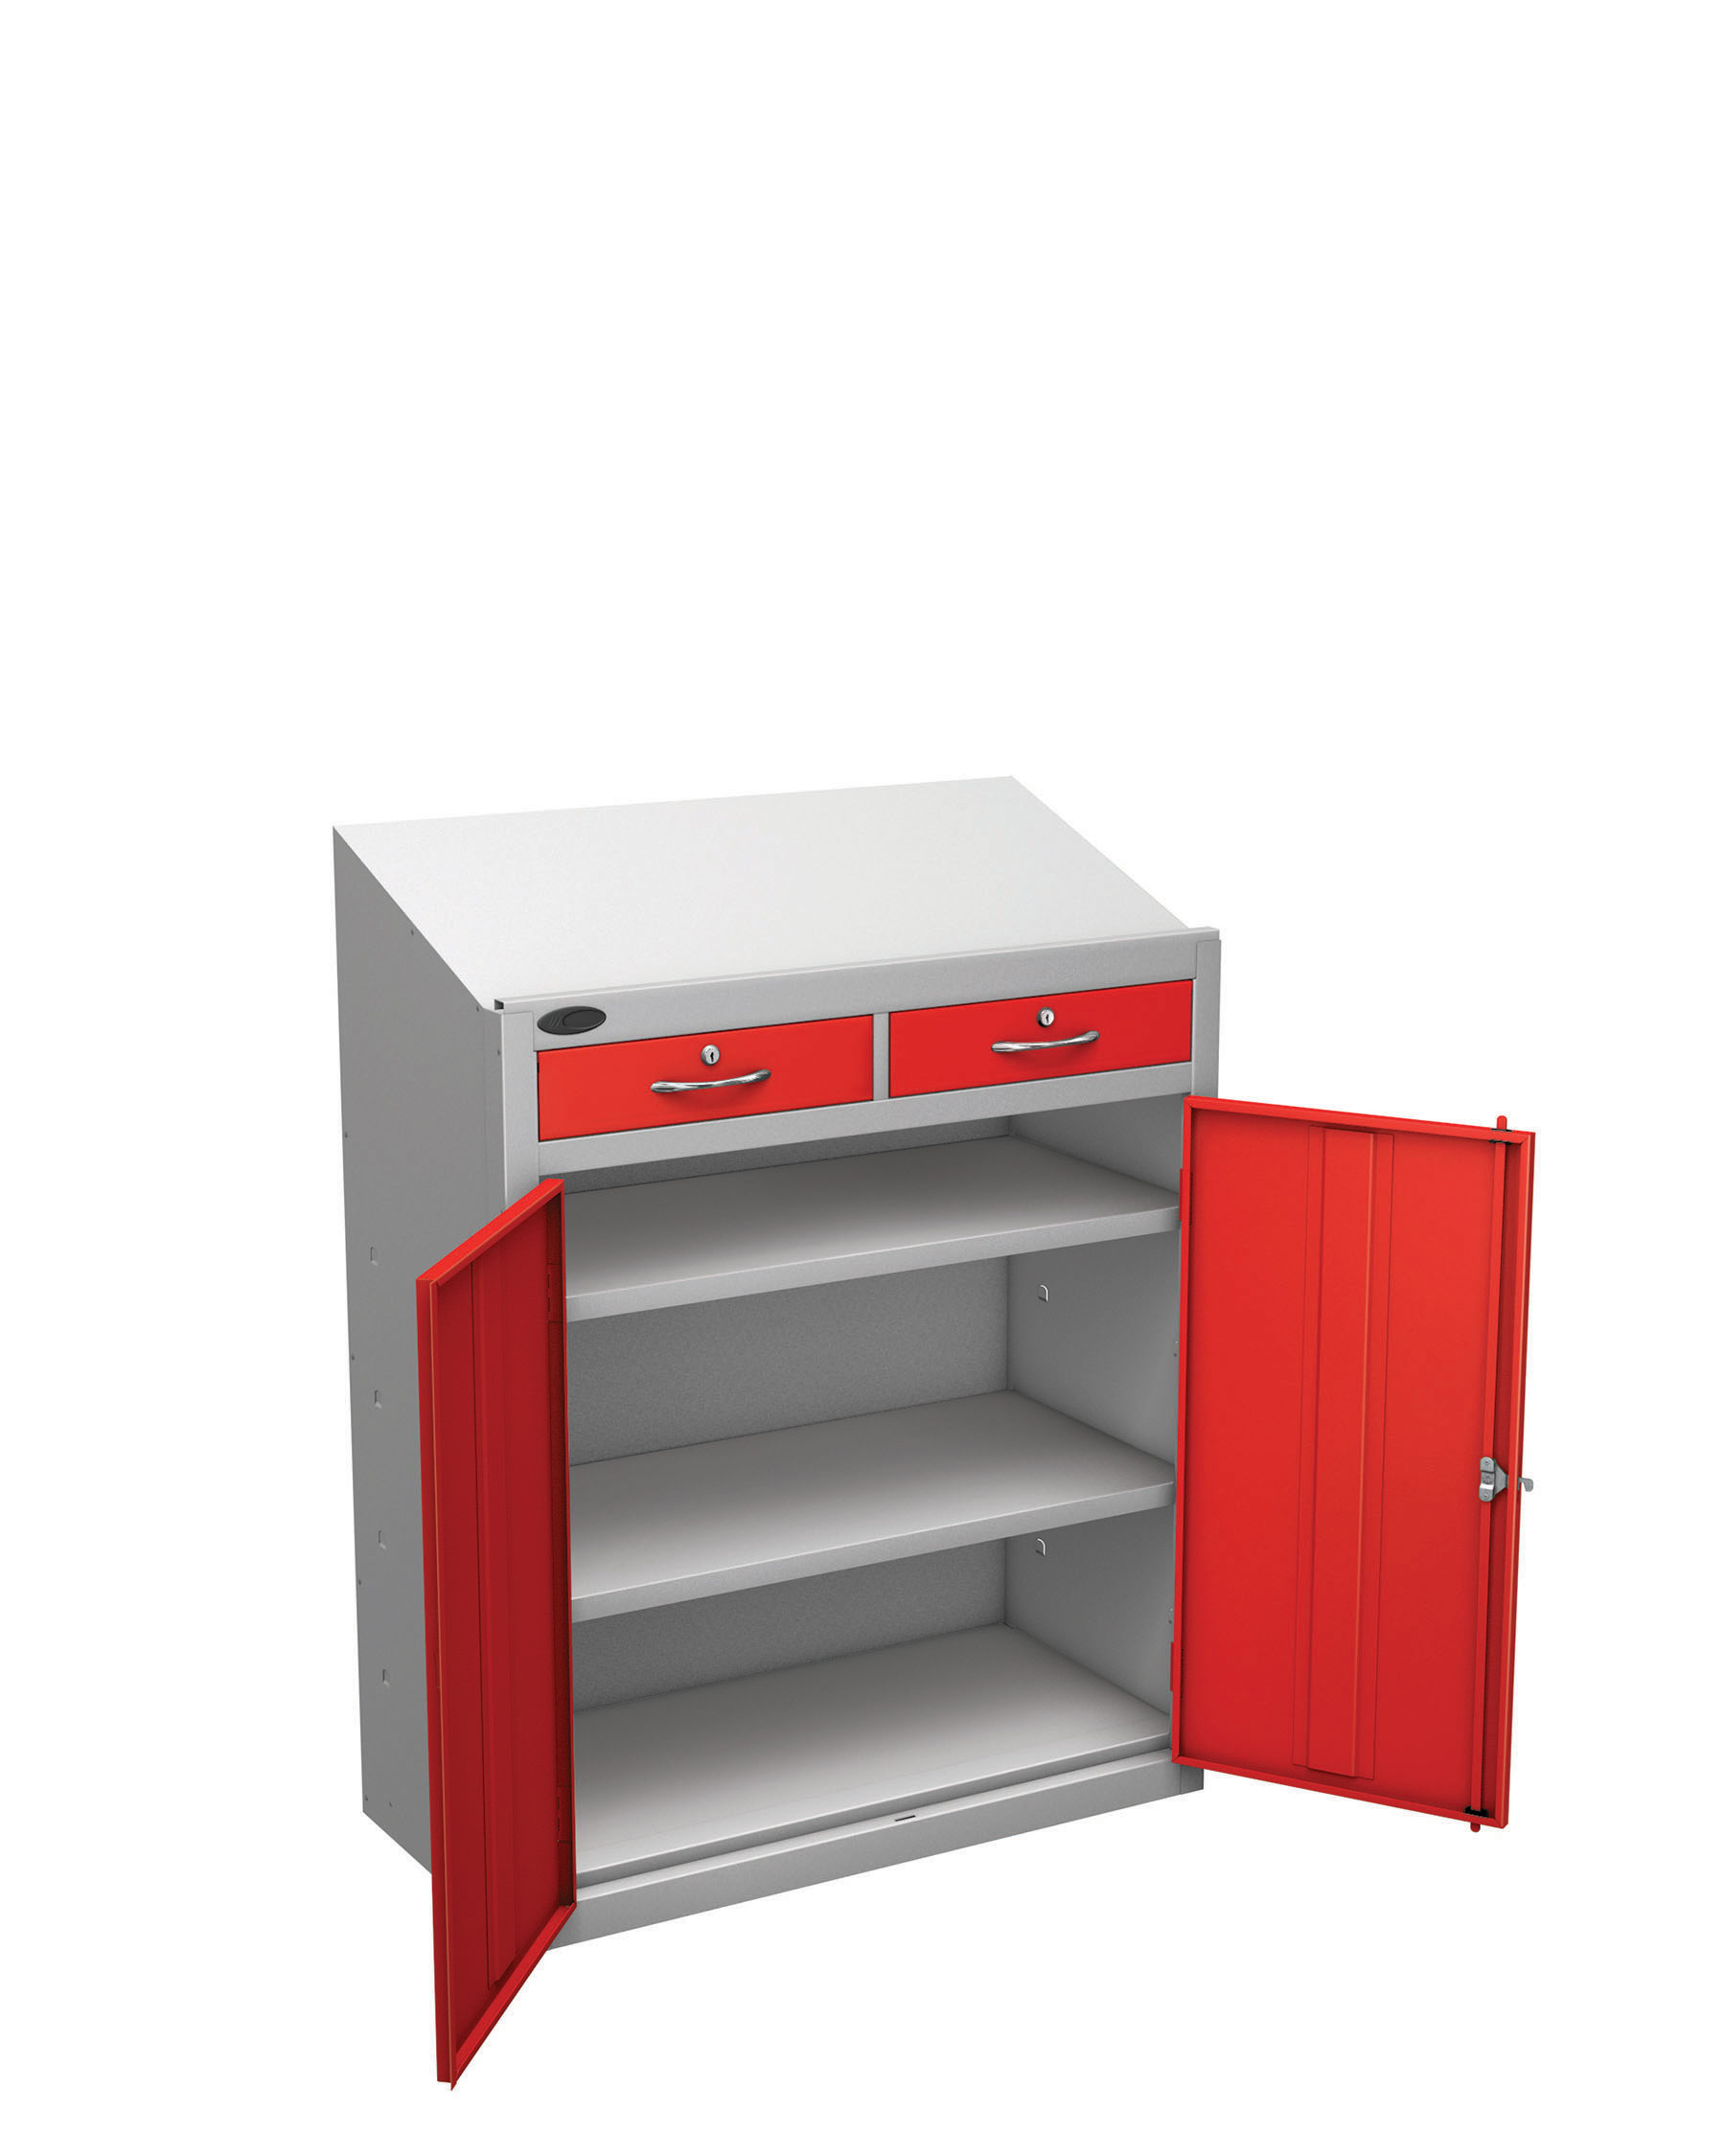 Probe workstation slope drawer red